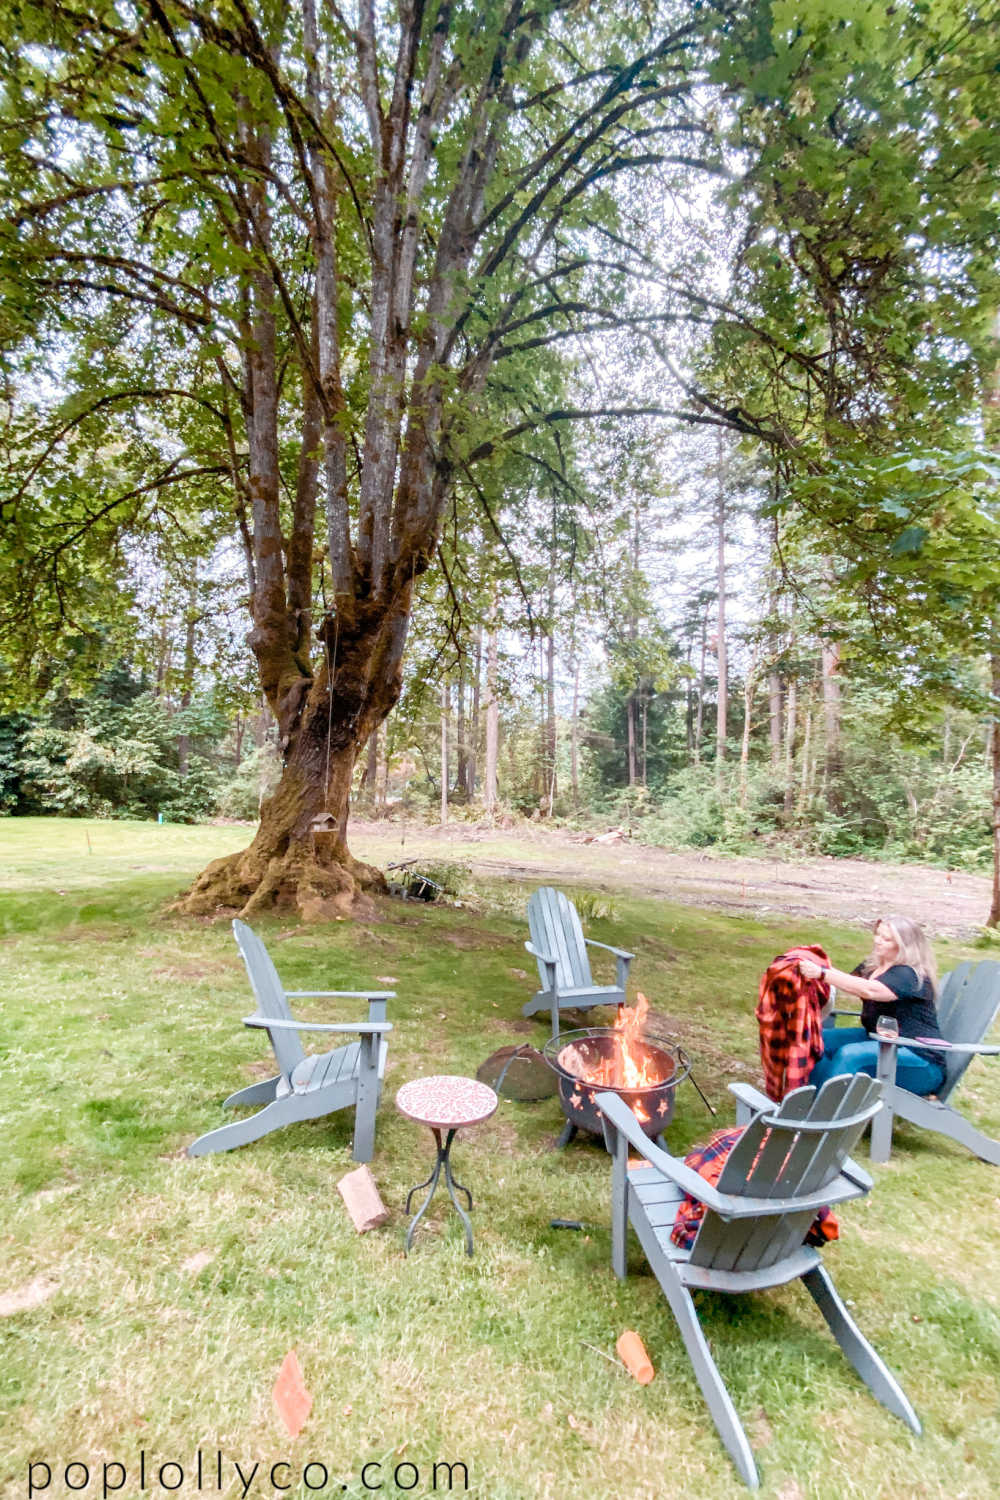 things to do in Bainbridge Island | bonfire | Poplolly co